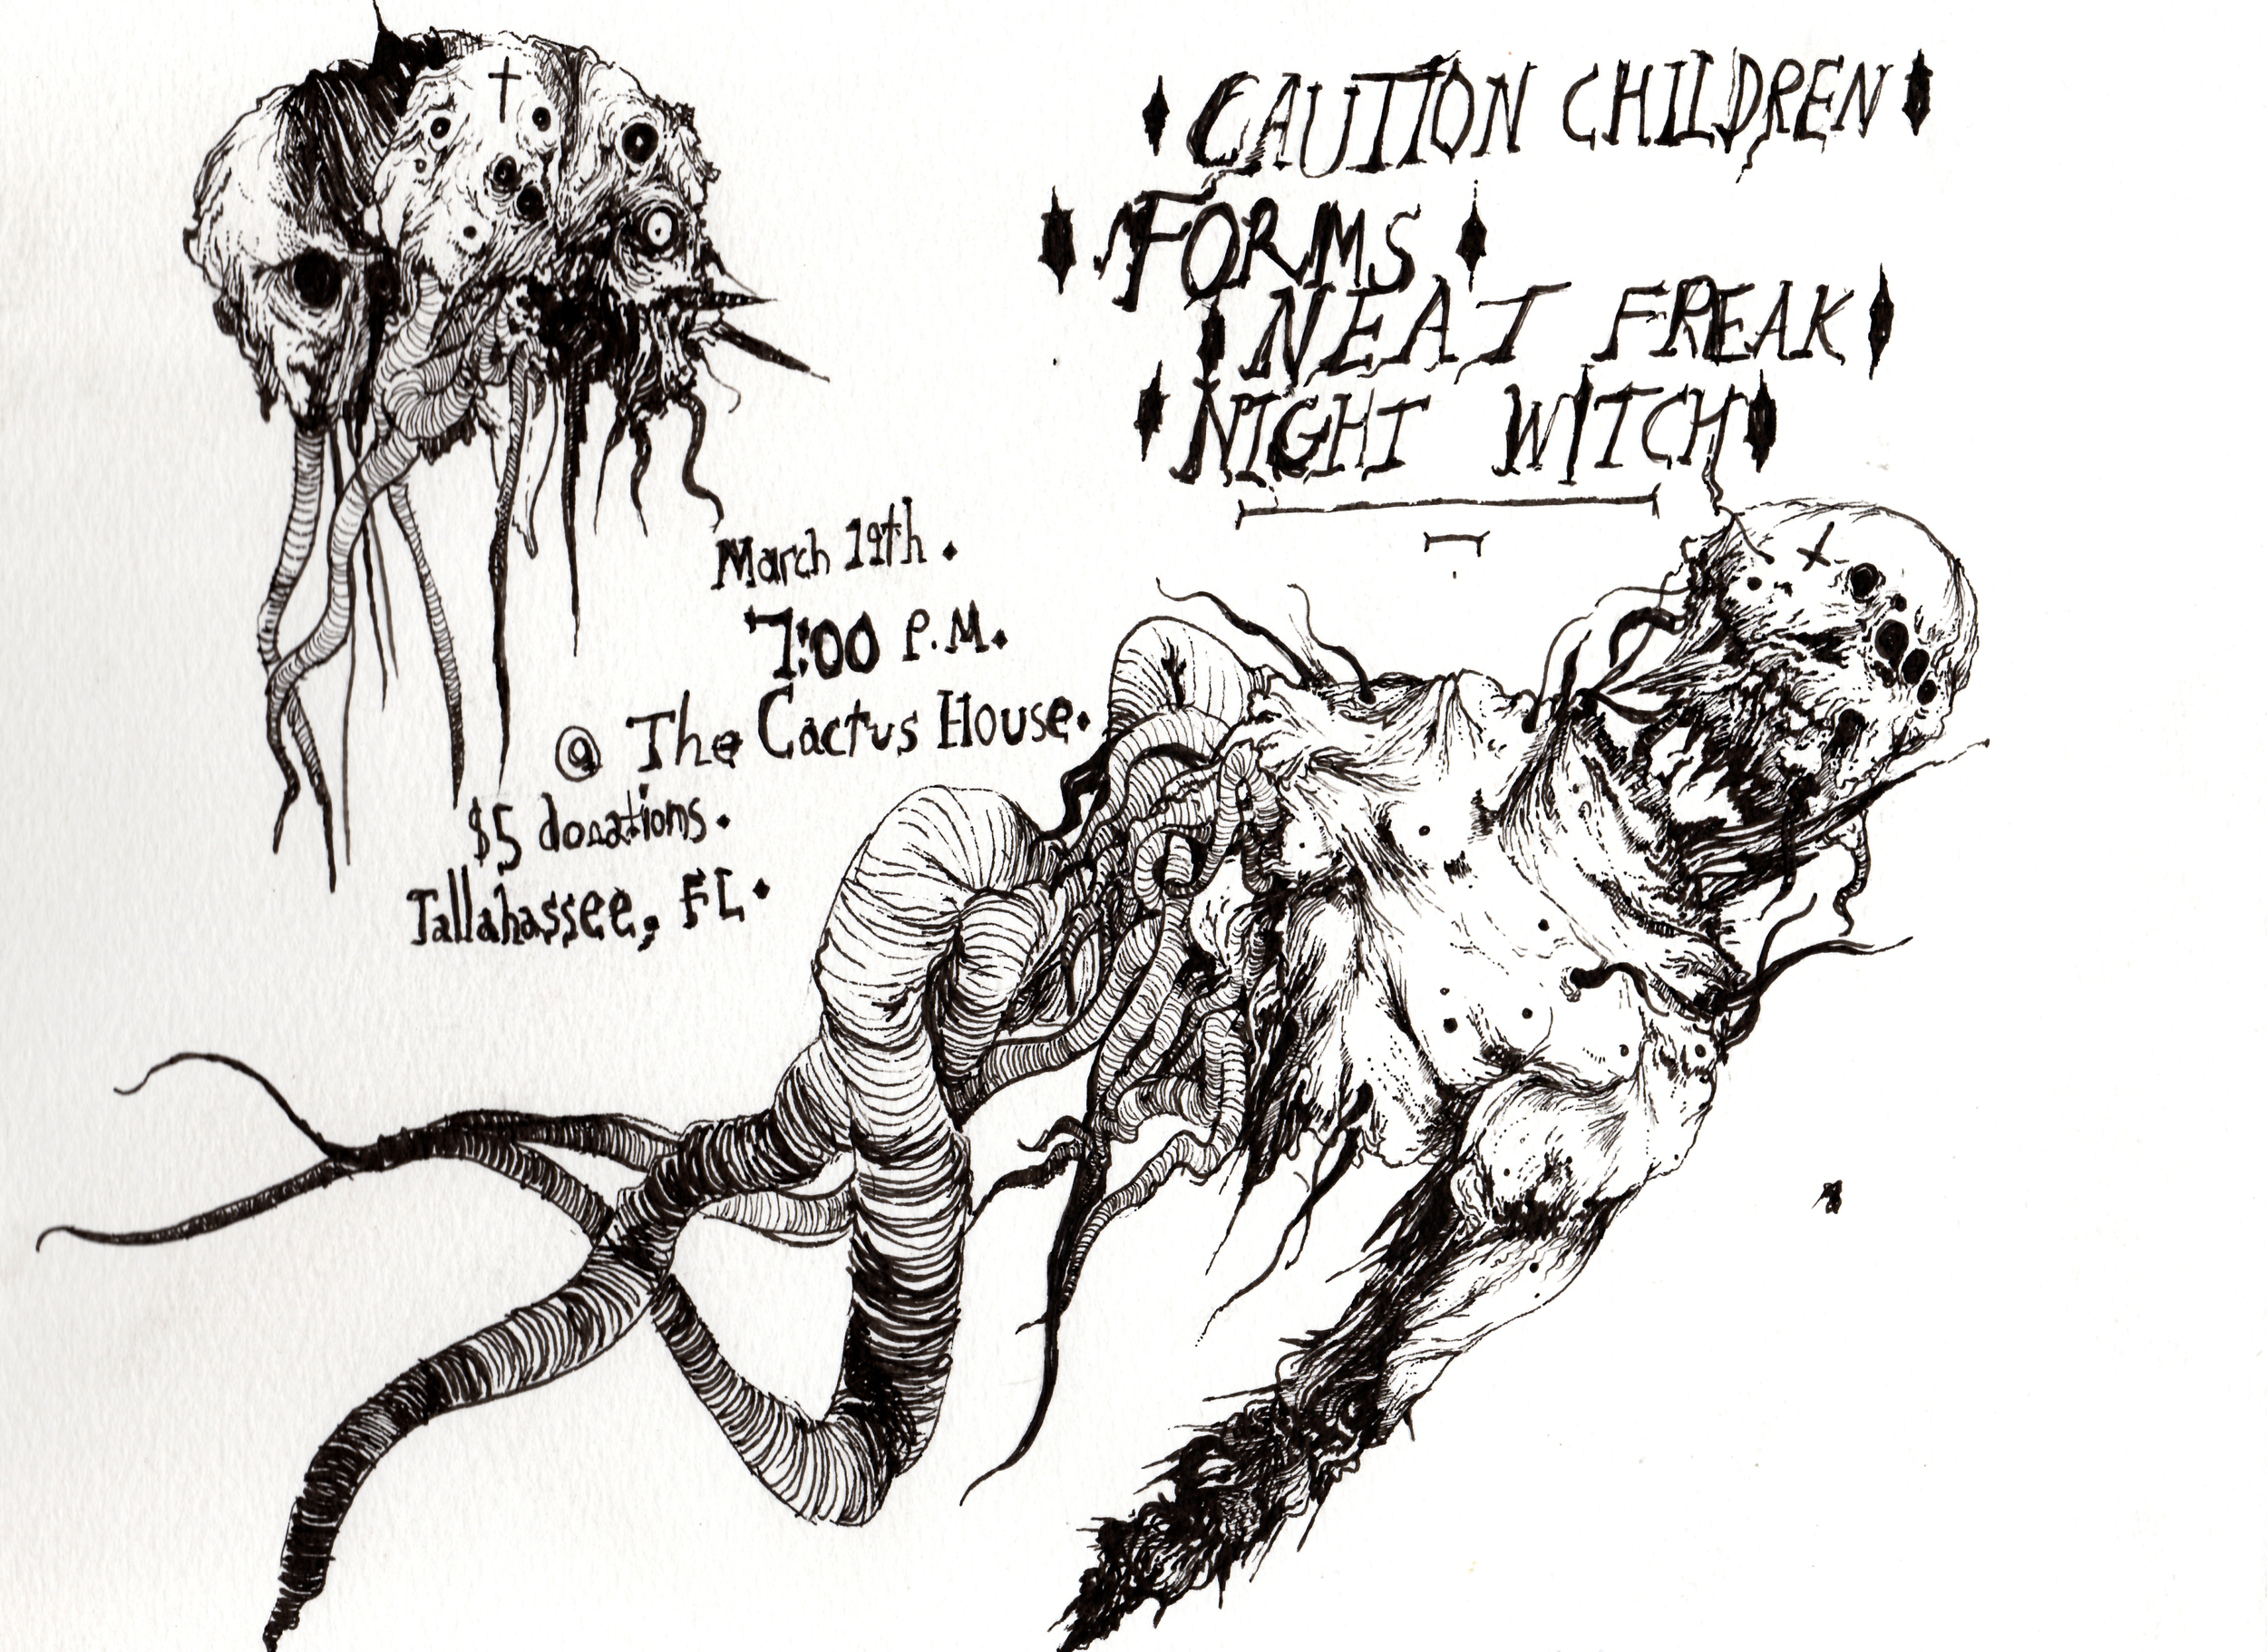 Flier for a SXSW tour kickoff show featuring The Caution Children, Forms, and Neat Freak.